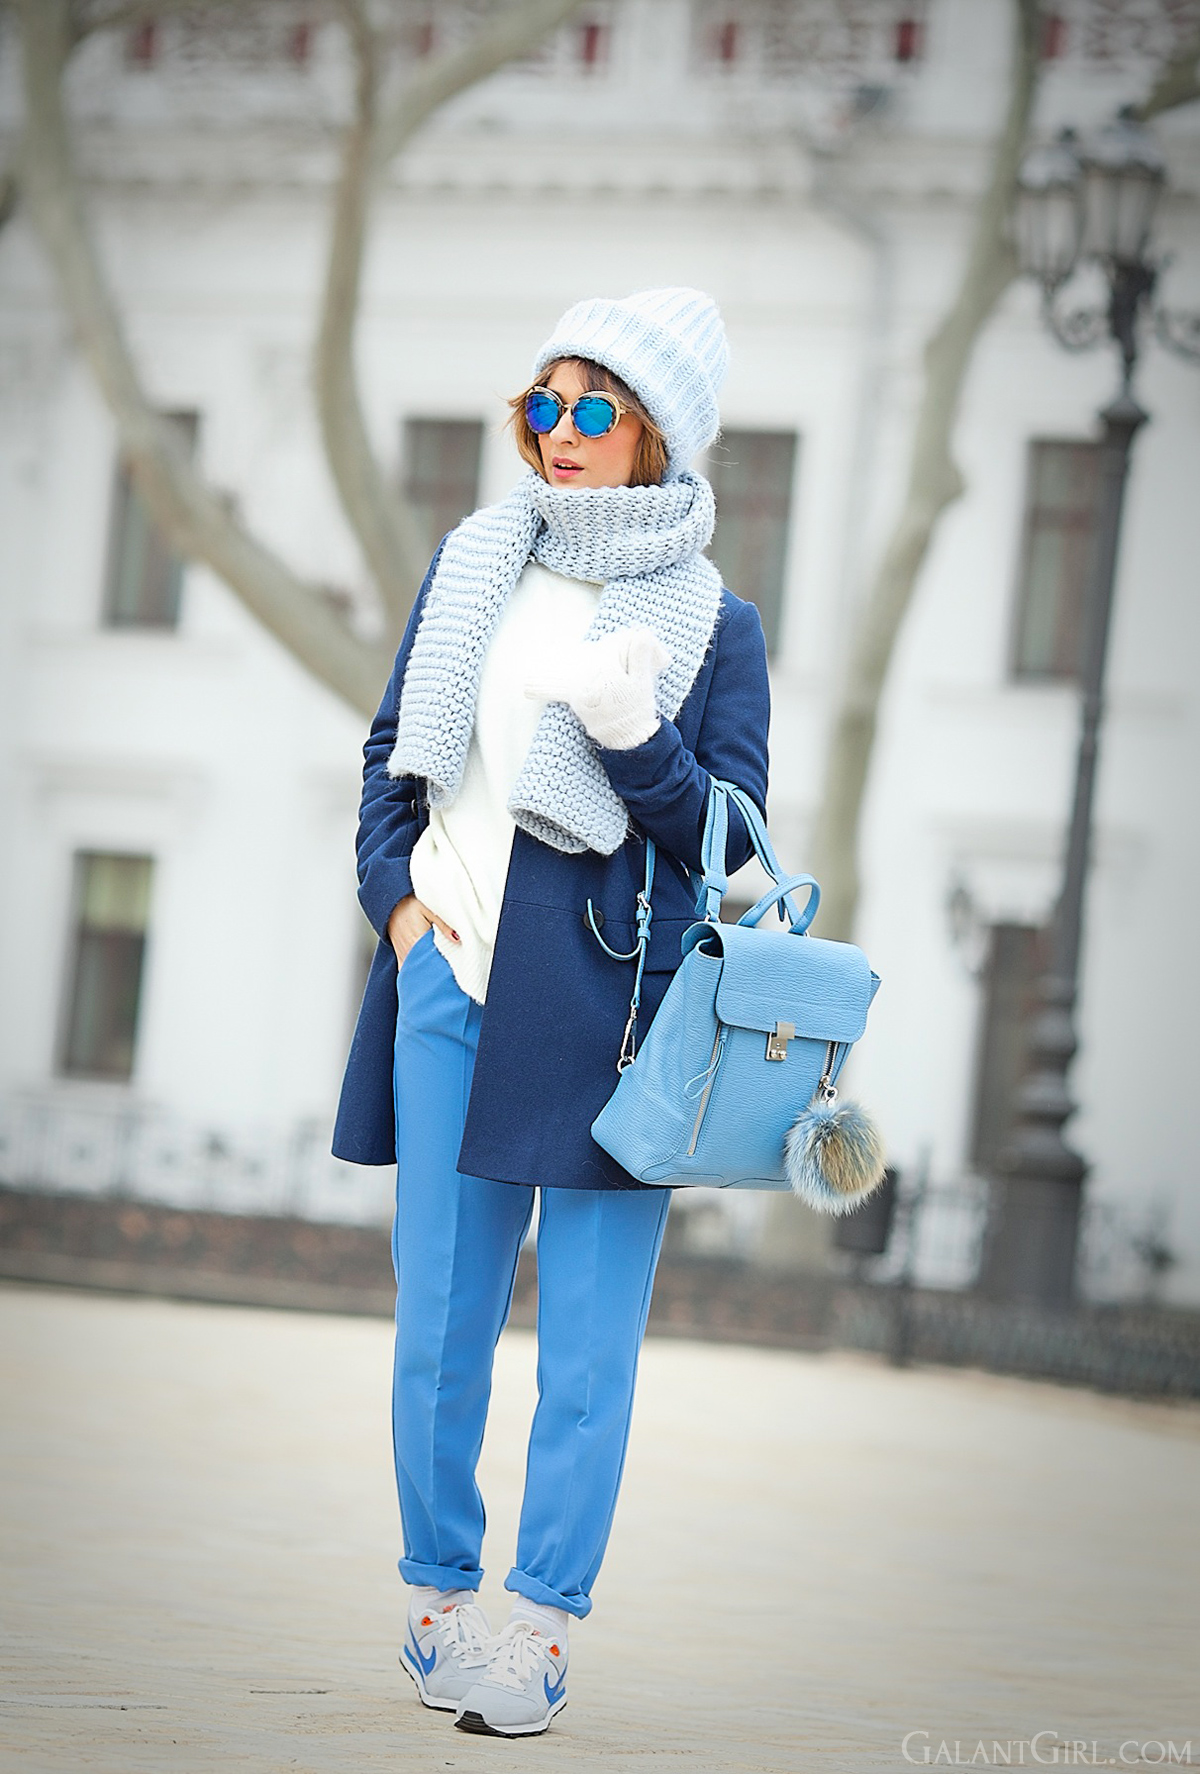 winter outfit, navy coat outfit, galant girl, cutler and gross eyewear, cutler and gross sunglasses,